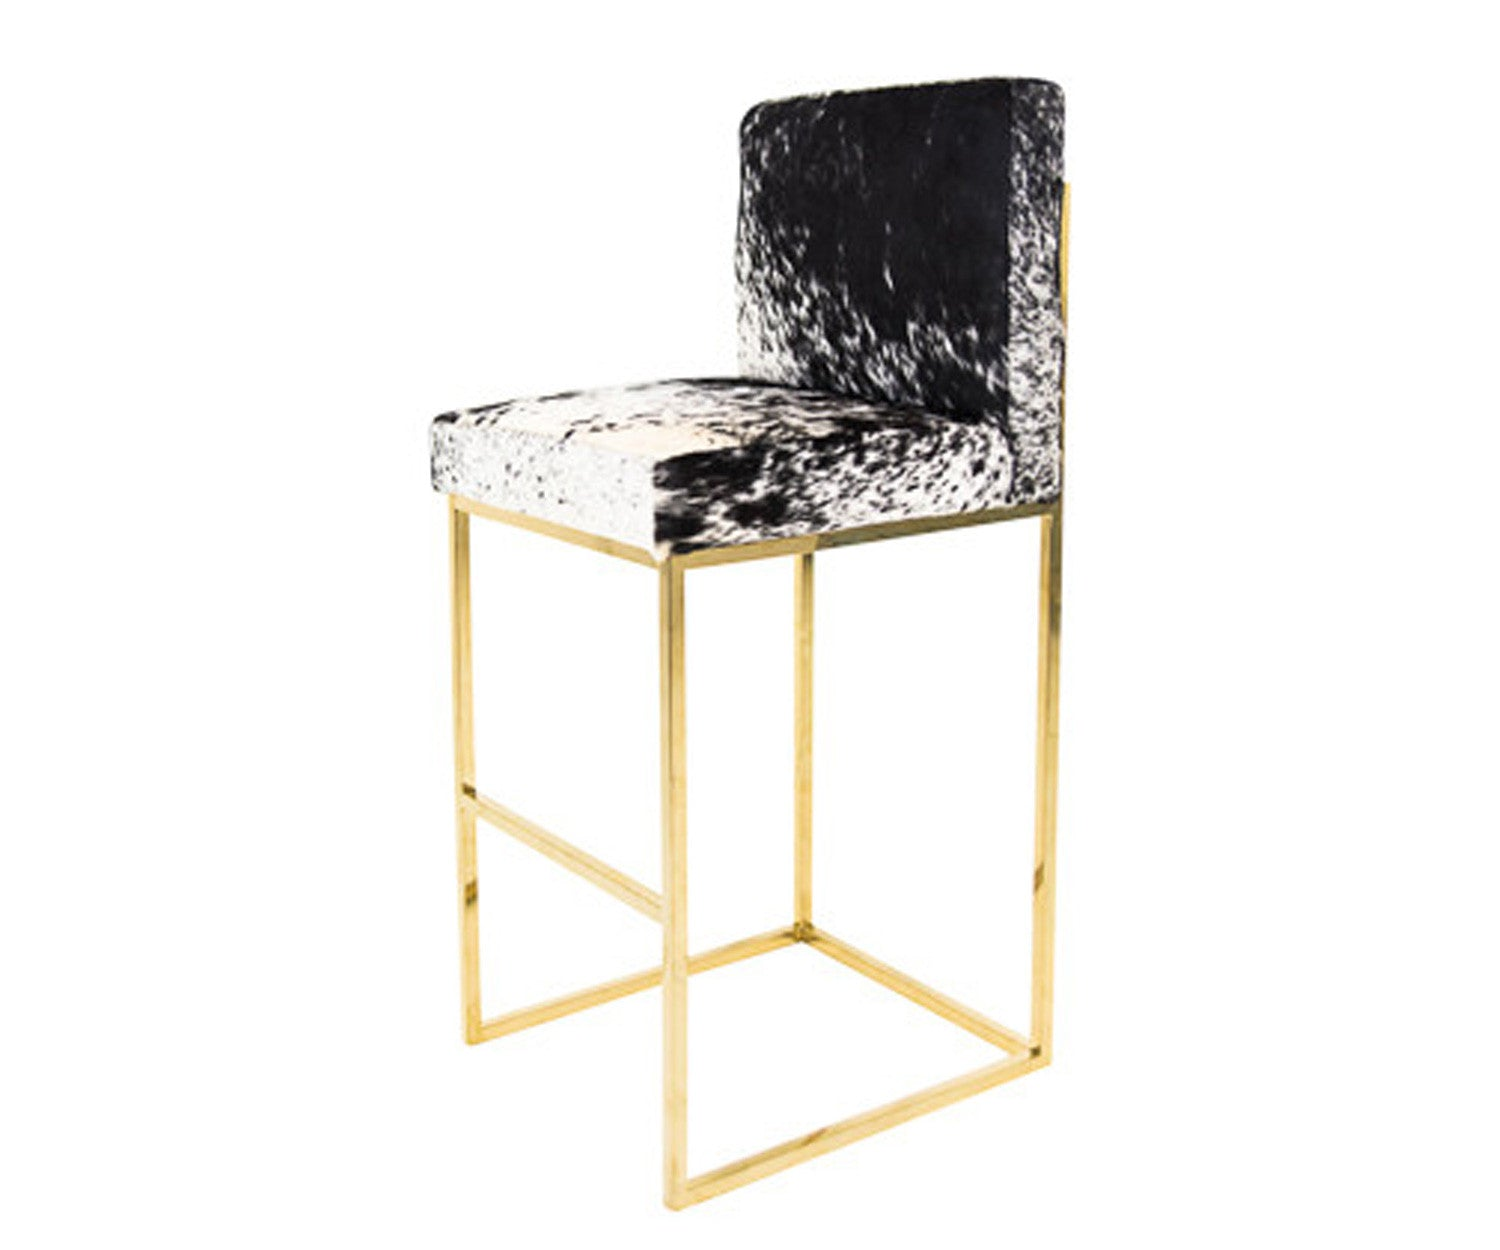 007 bar stool in bw spotted cowhide